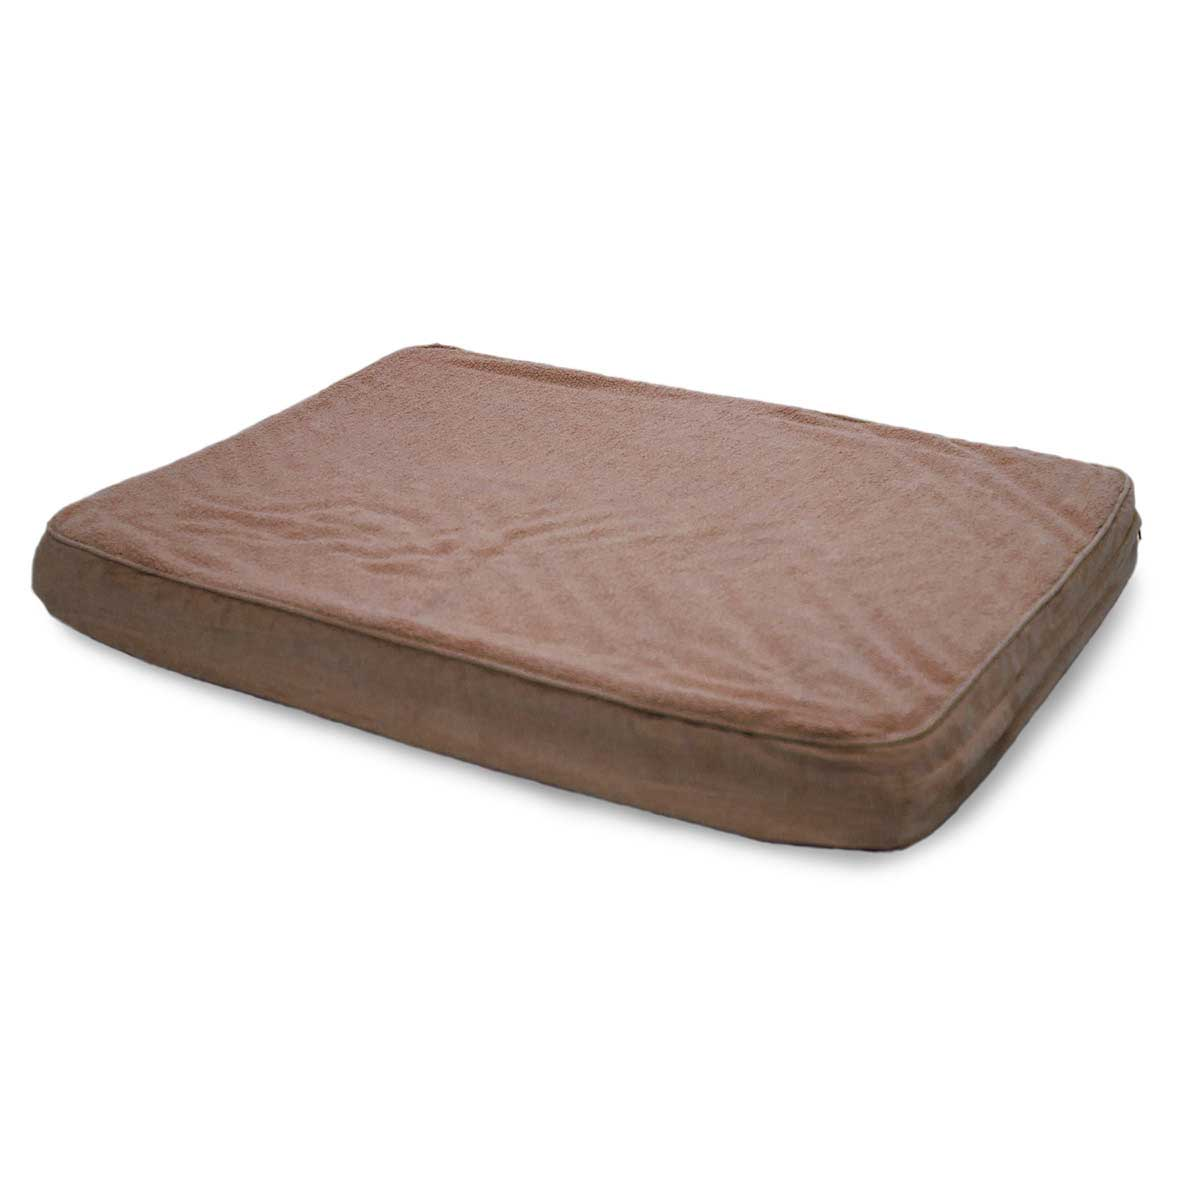 Espresso Brown Furhaven Pet Nap Snuggle Terry & Suede Orthopedic Mats for Dogs - 35 inches by 44 inches